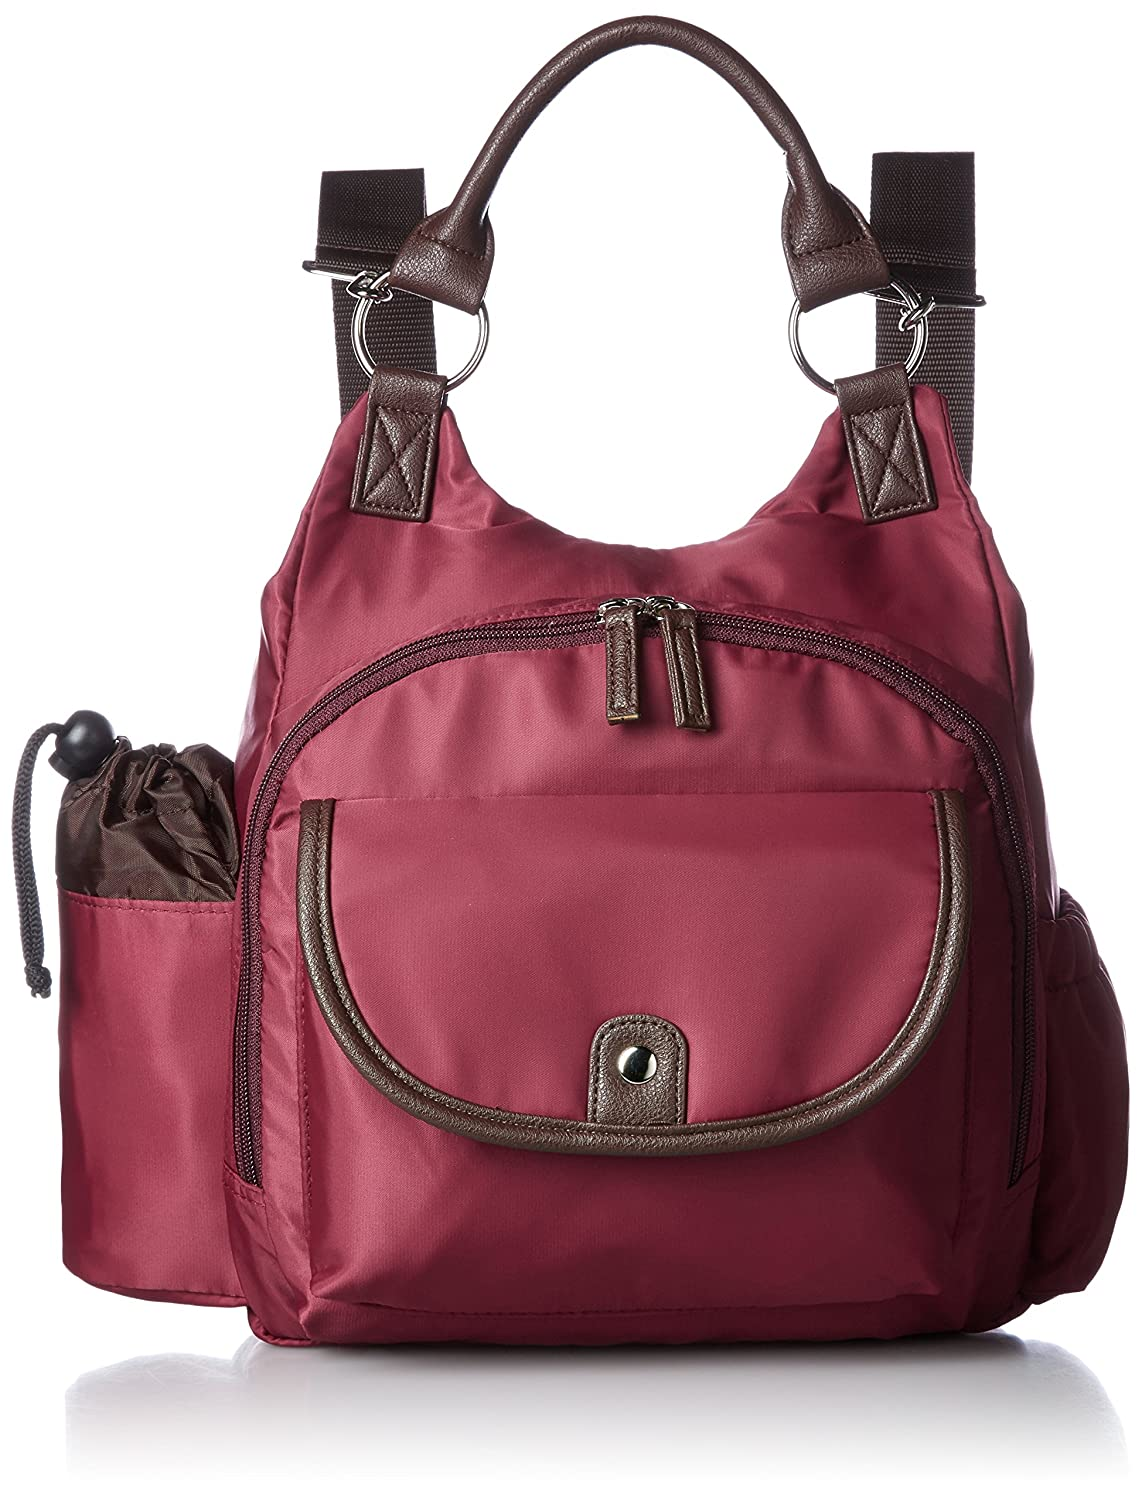 [Twilight Abenyu] 2Way 17054G37 Red Red with A Backpack Handle Japan F S